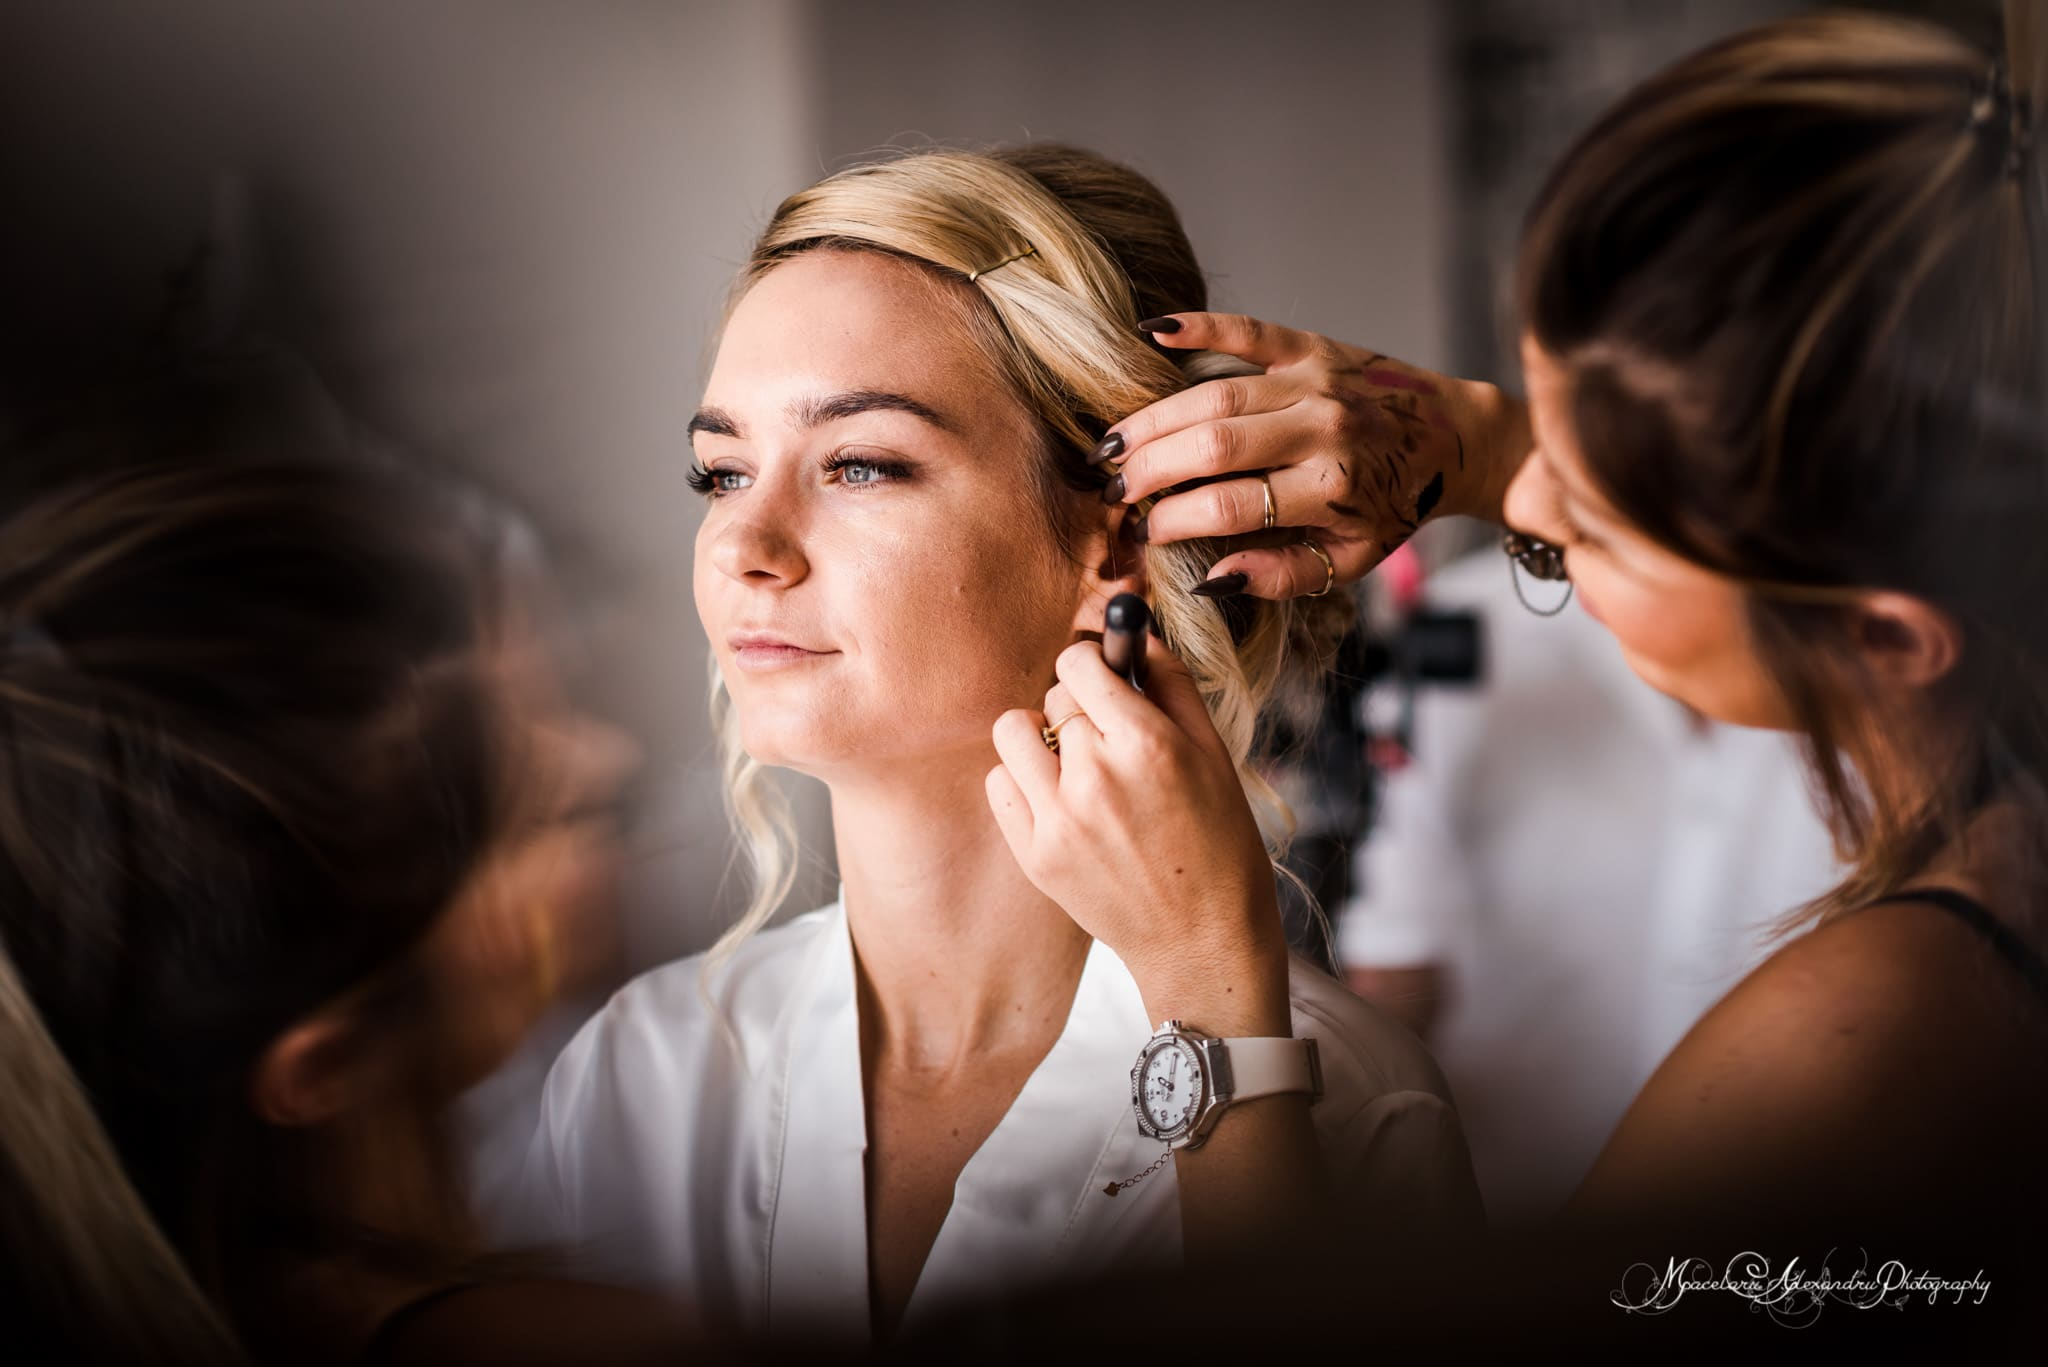 Wedding photography in Paphos - Bride is having make up